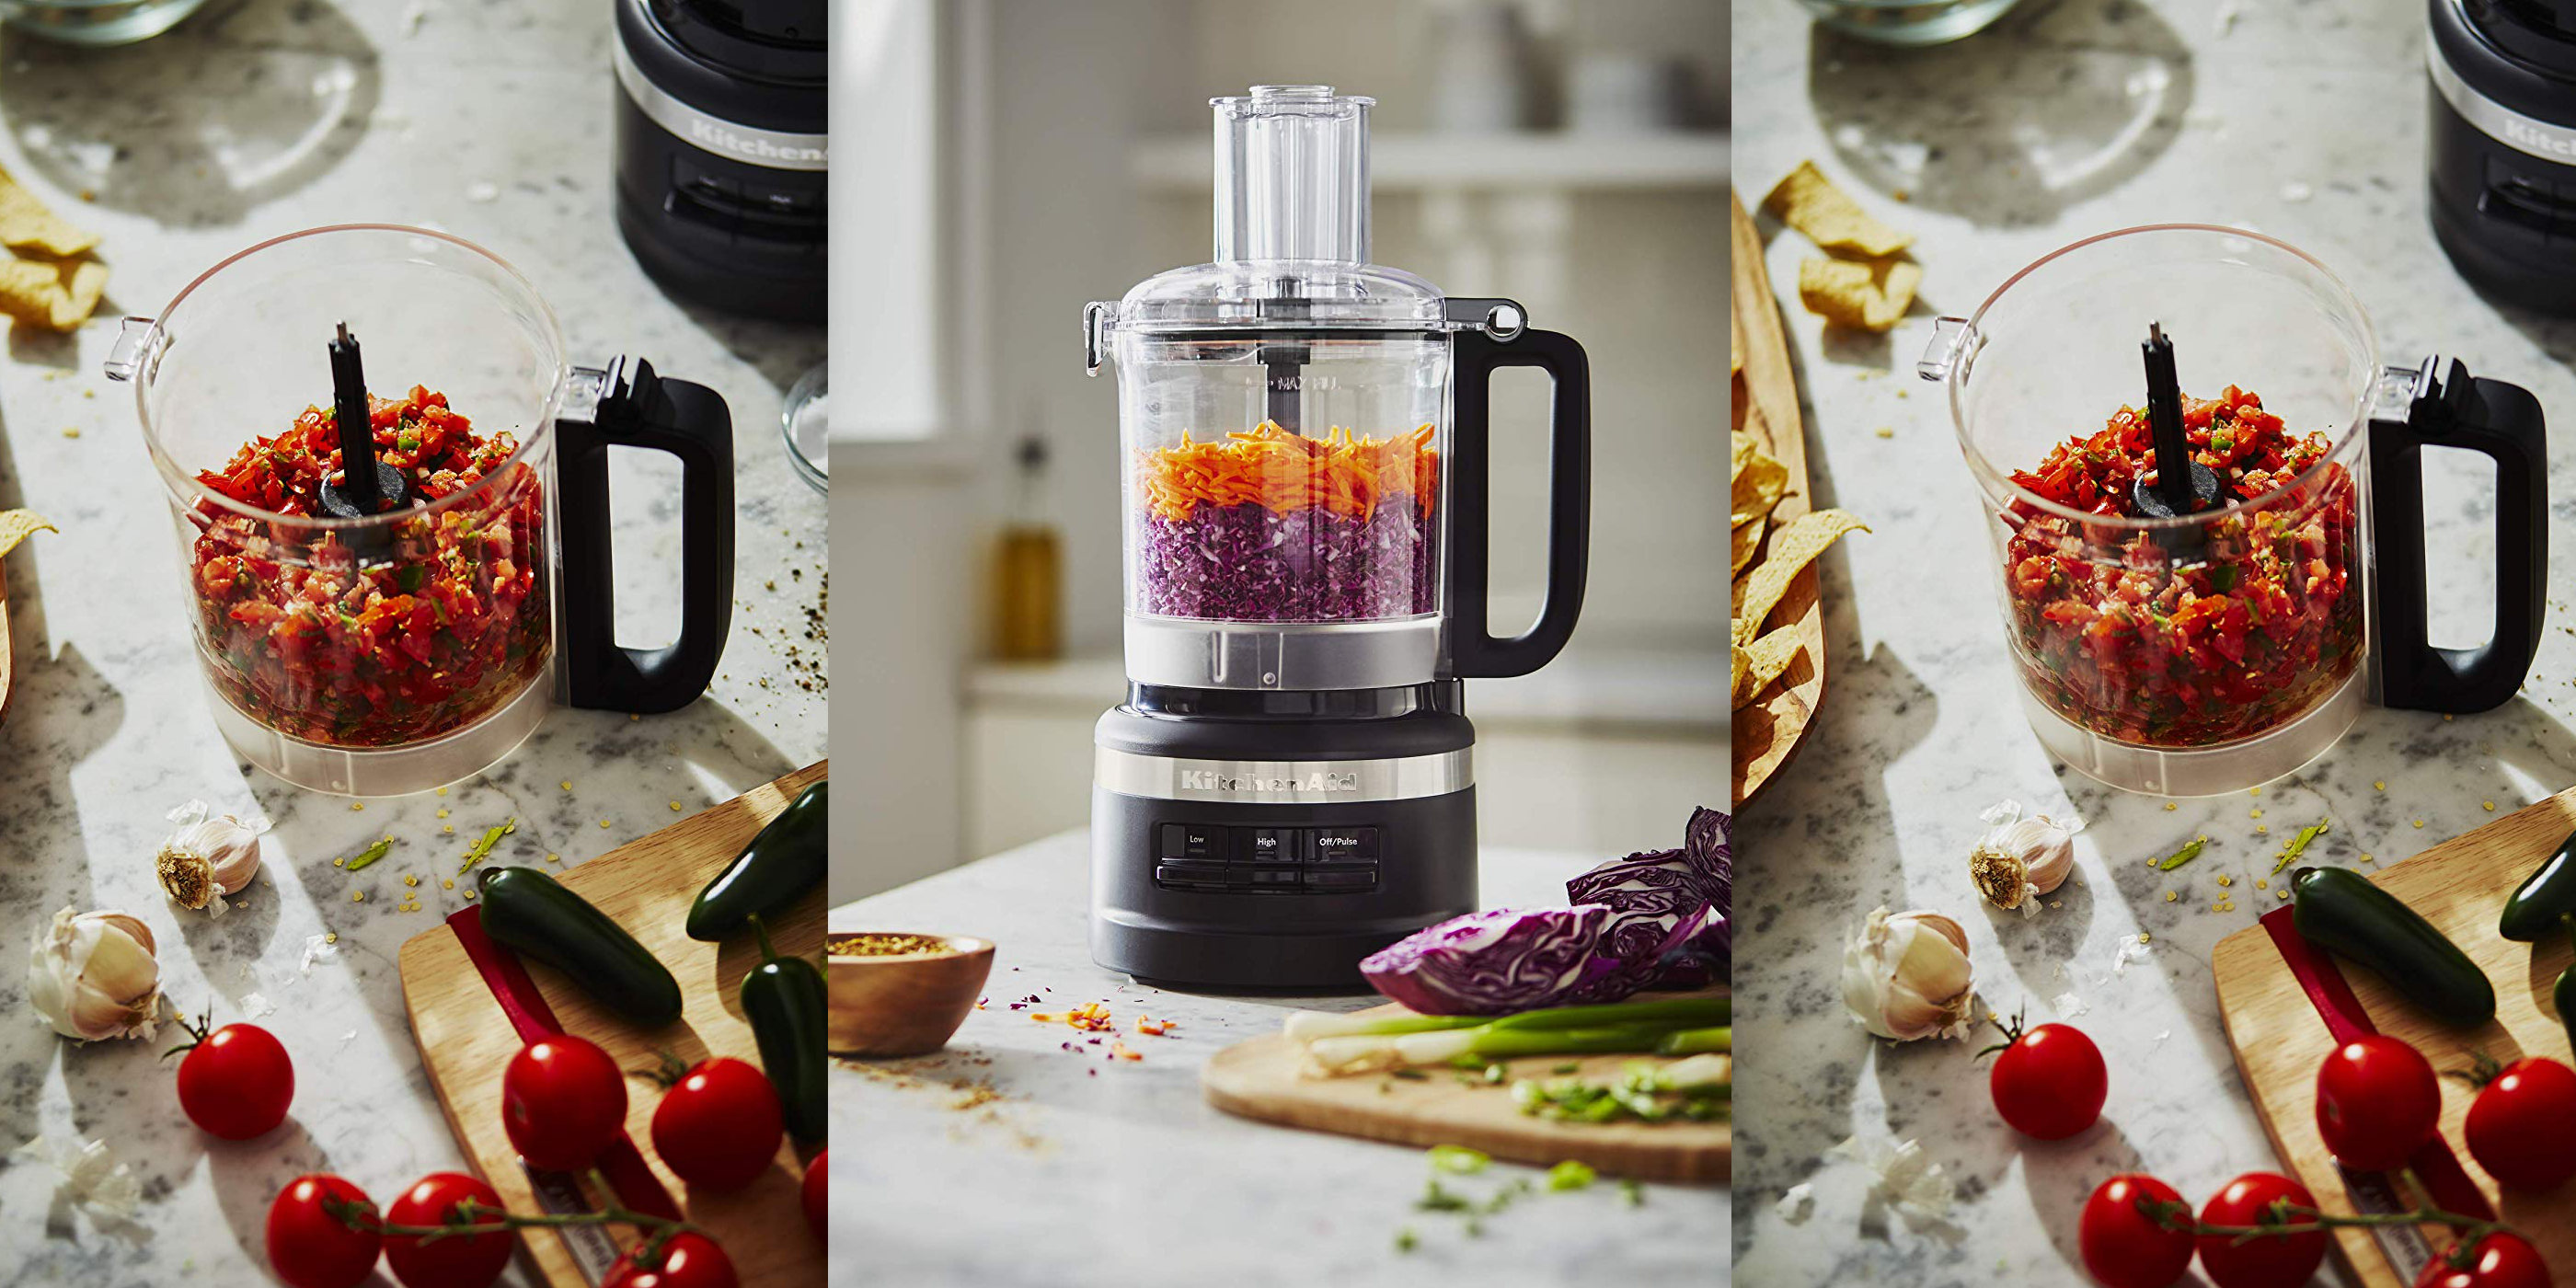 Kitchenaid S 9 Cup Food Processor Is Down To 126 For